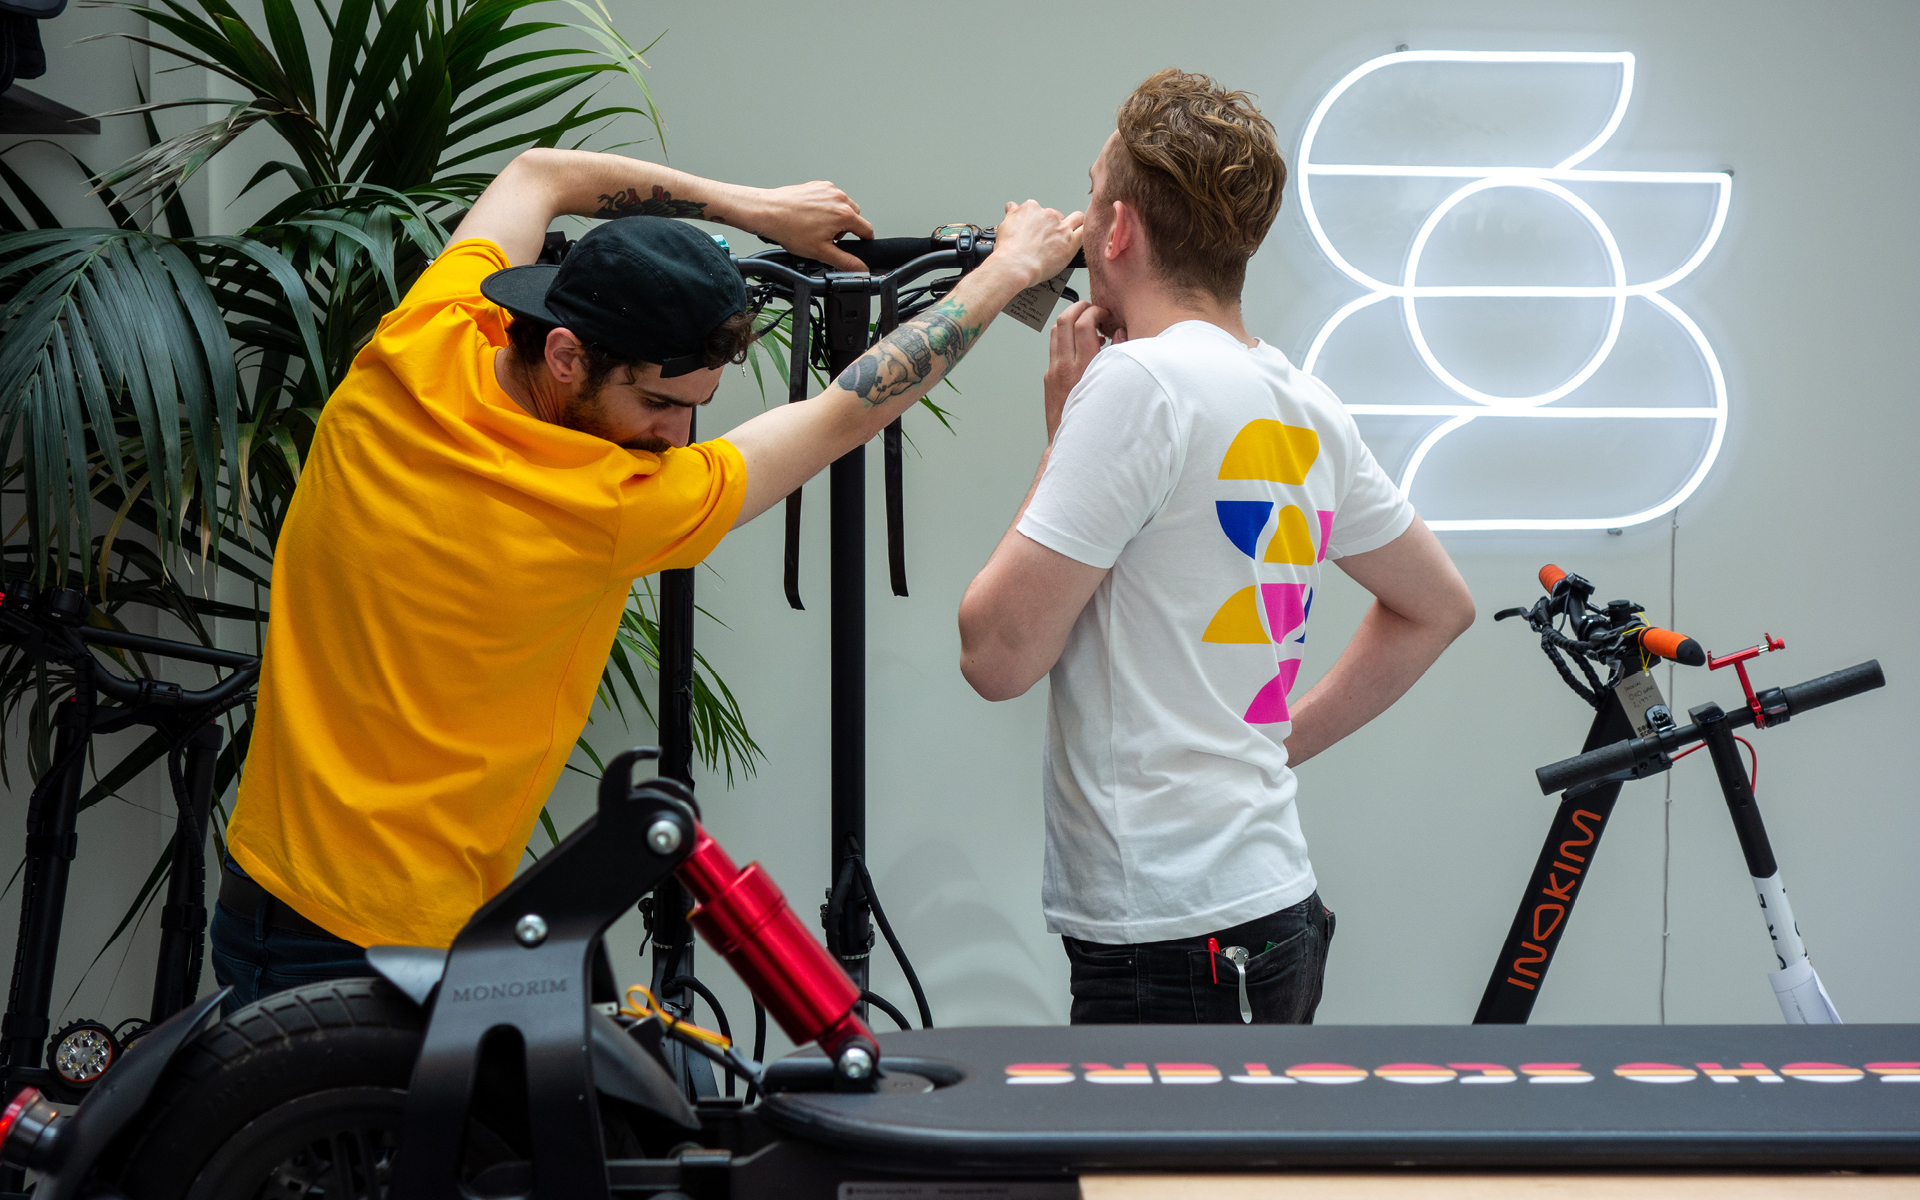 Soho Scooters engineers displaying branded merchandise and workshop